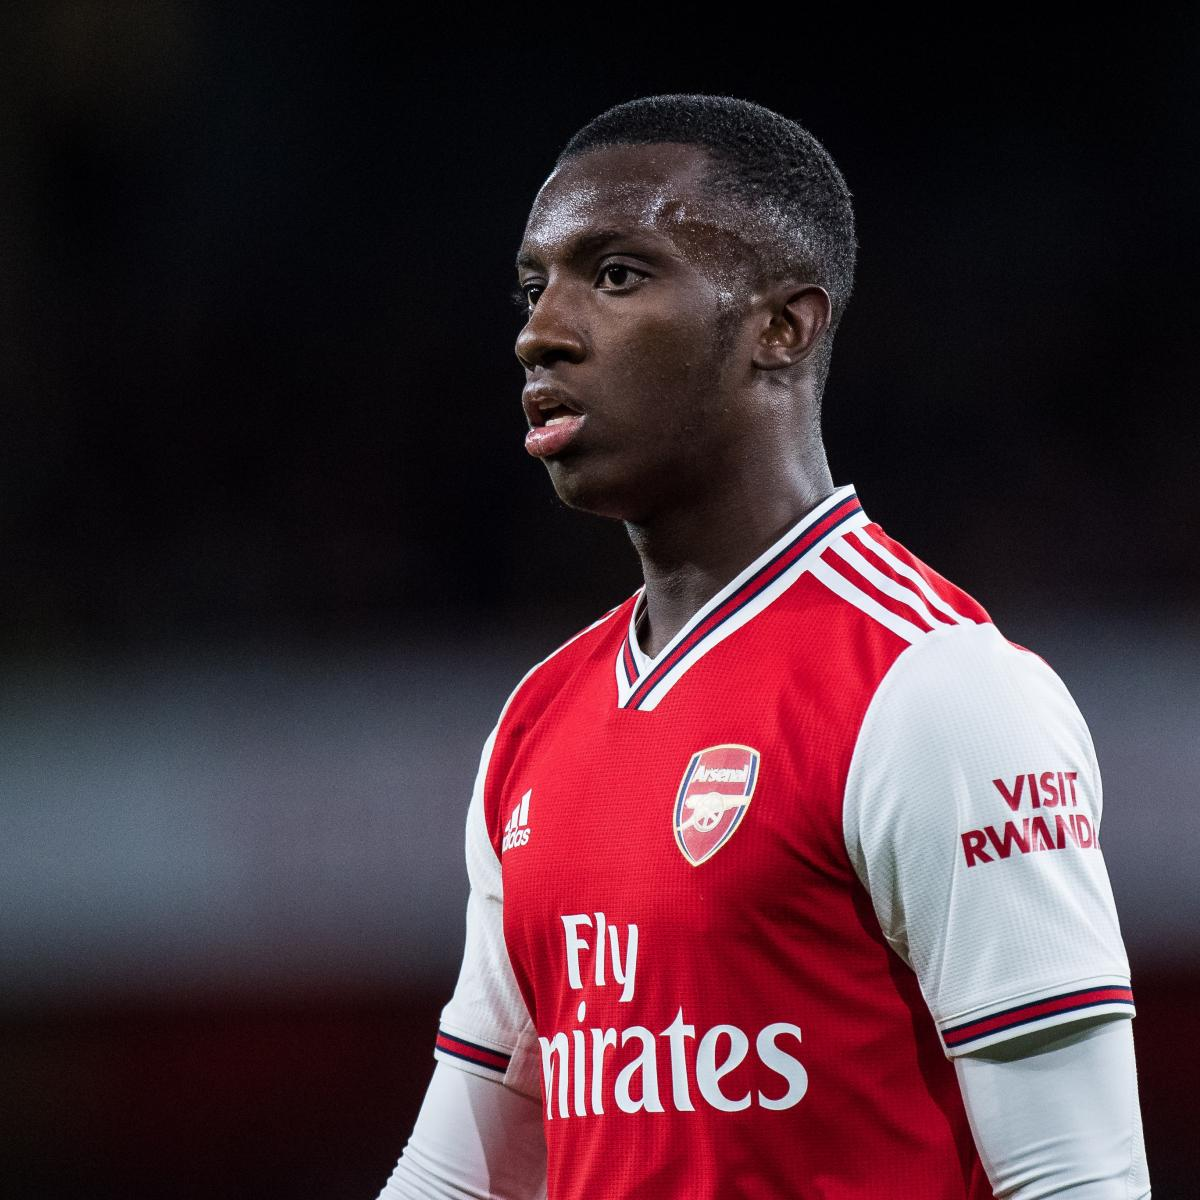 Eddie Nketiah Says Lacazette, Aubameyang 'Always' Looking to Help Him at Arsenal